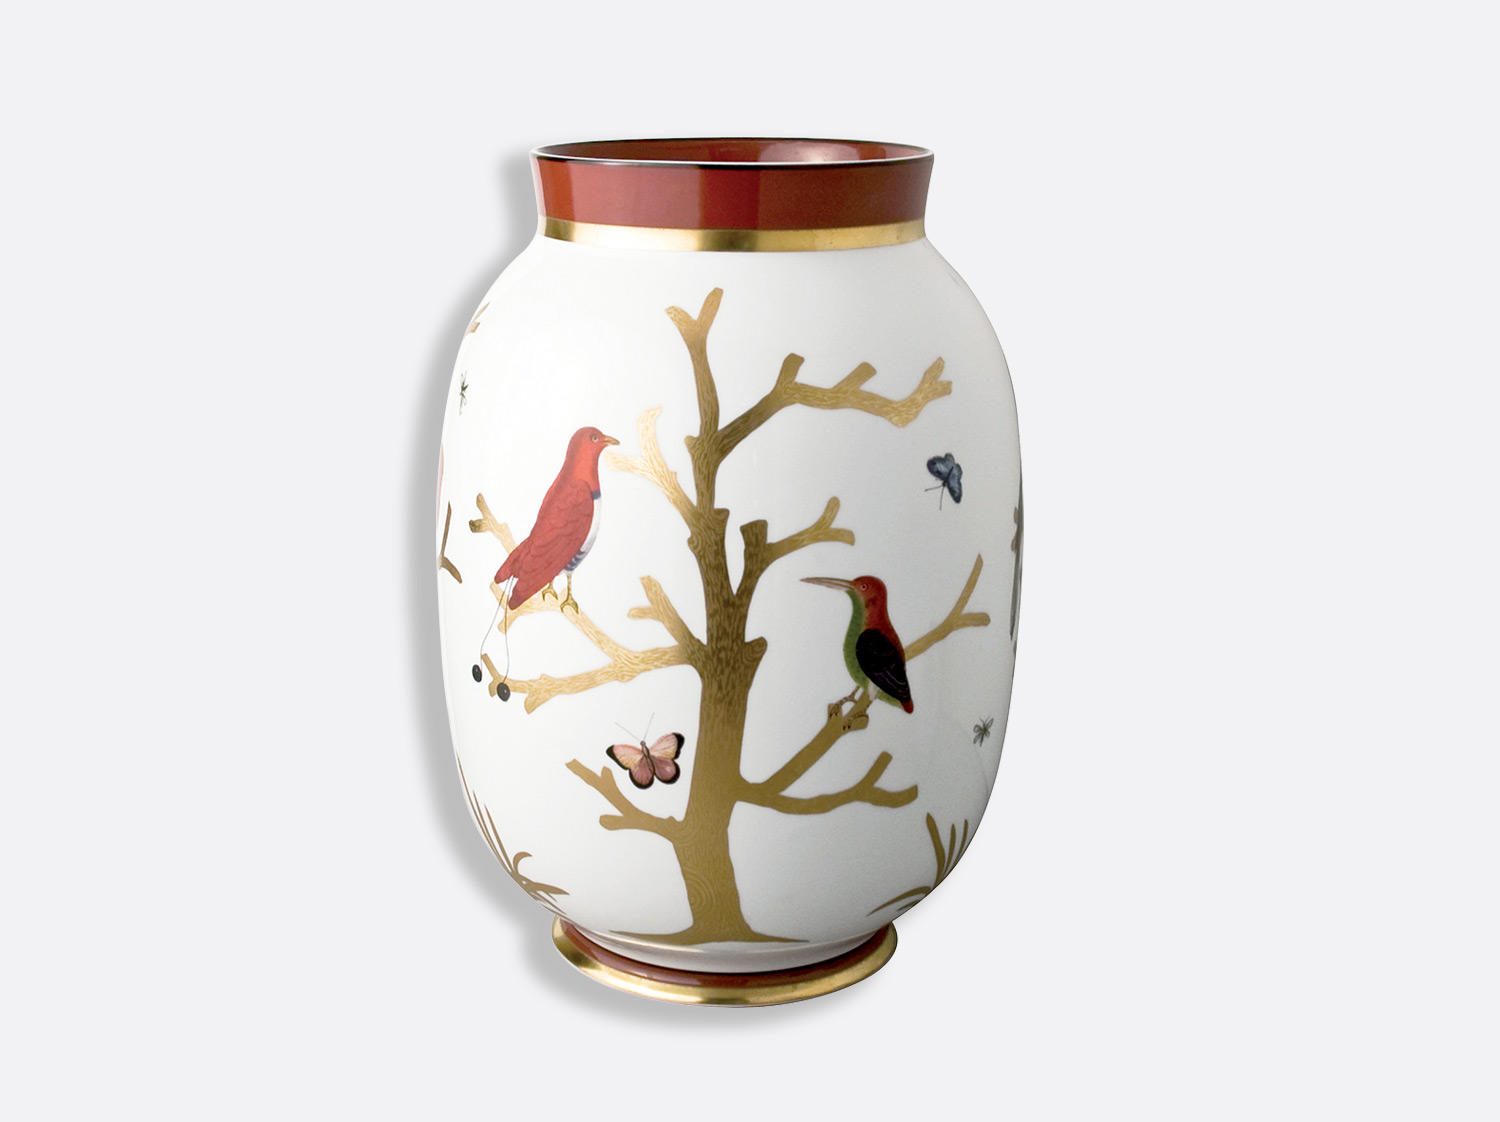 China Toscan vase 33,5 cm of the collection Aux oiseaux | Bernardaud